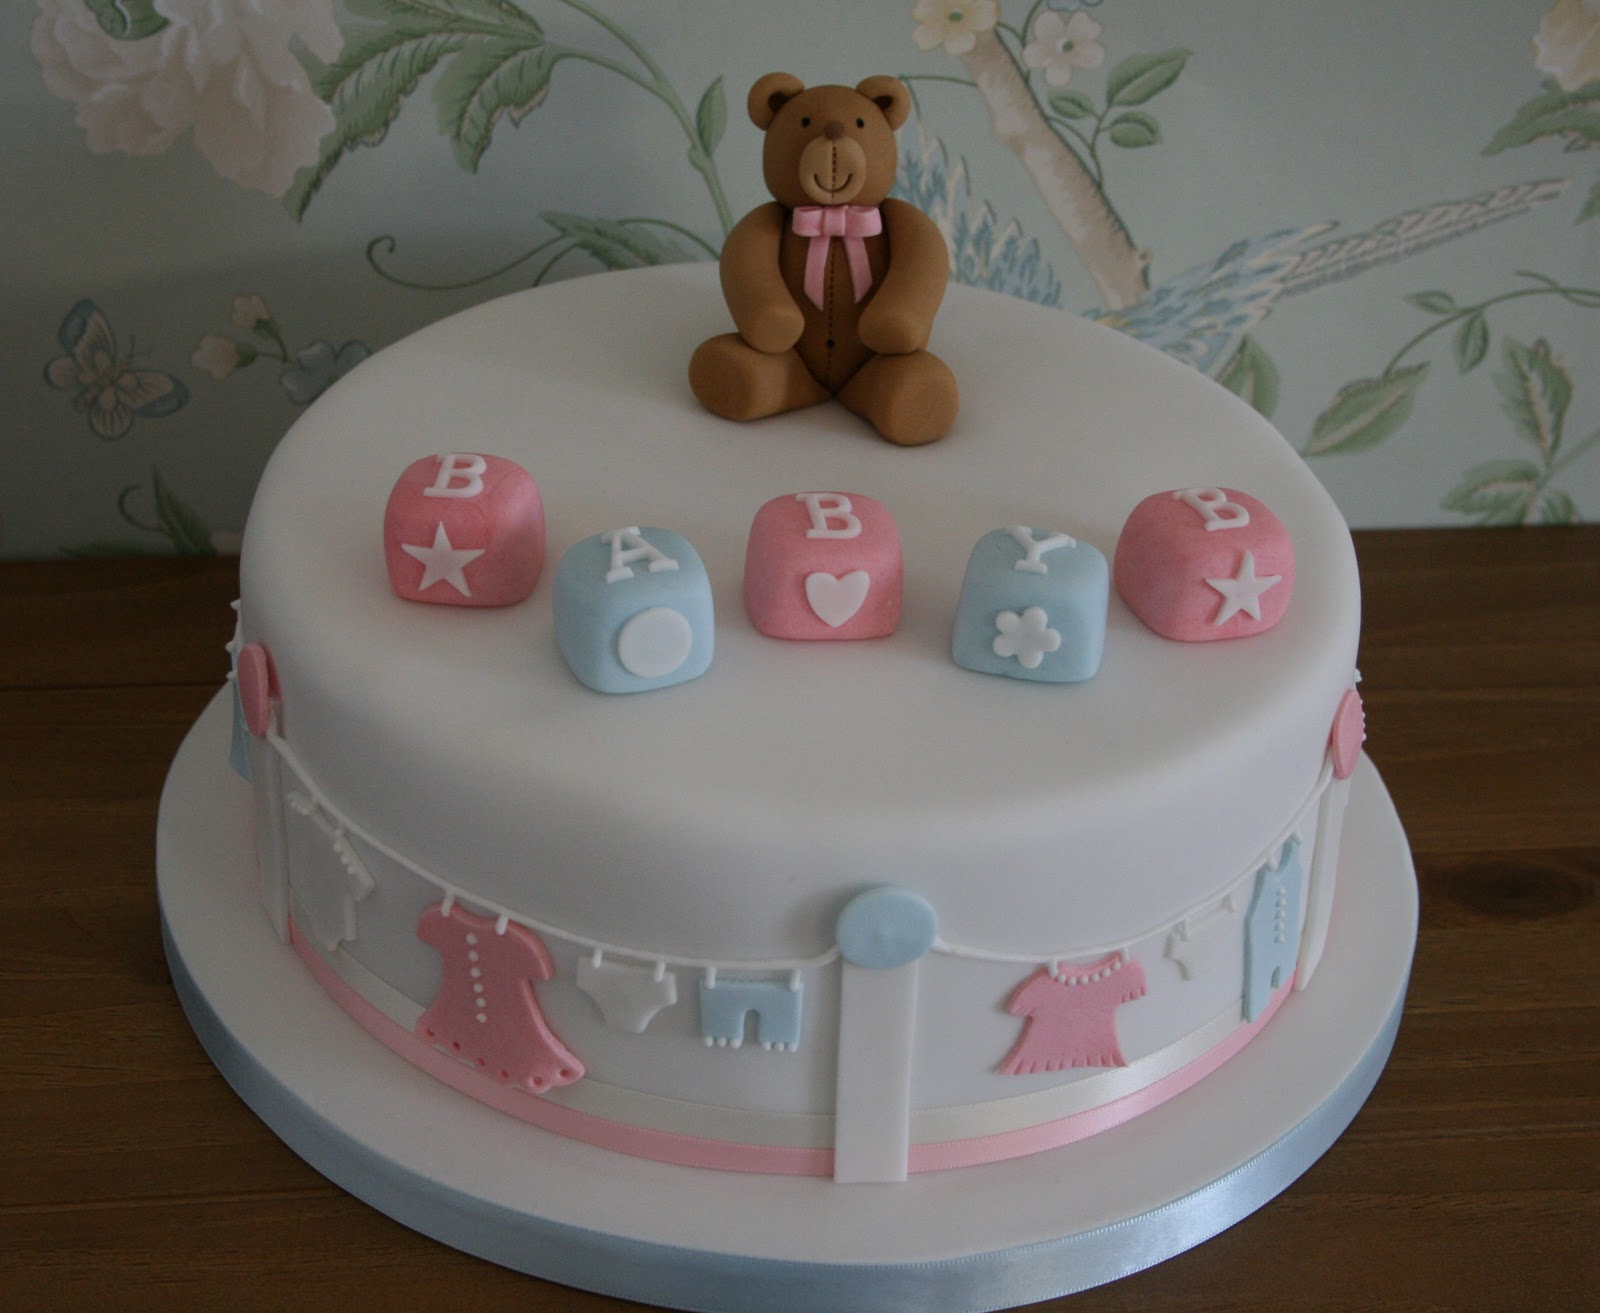 Cake Ideas For New Baby : 70 Baby Shower Cakes and Cupcakes Ideas